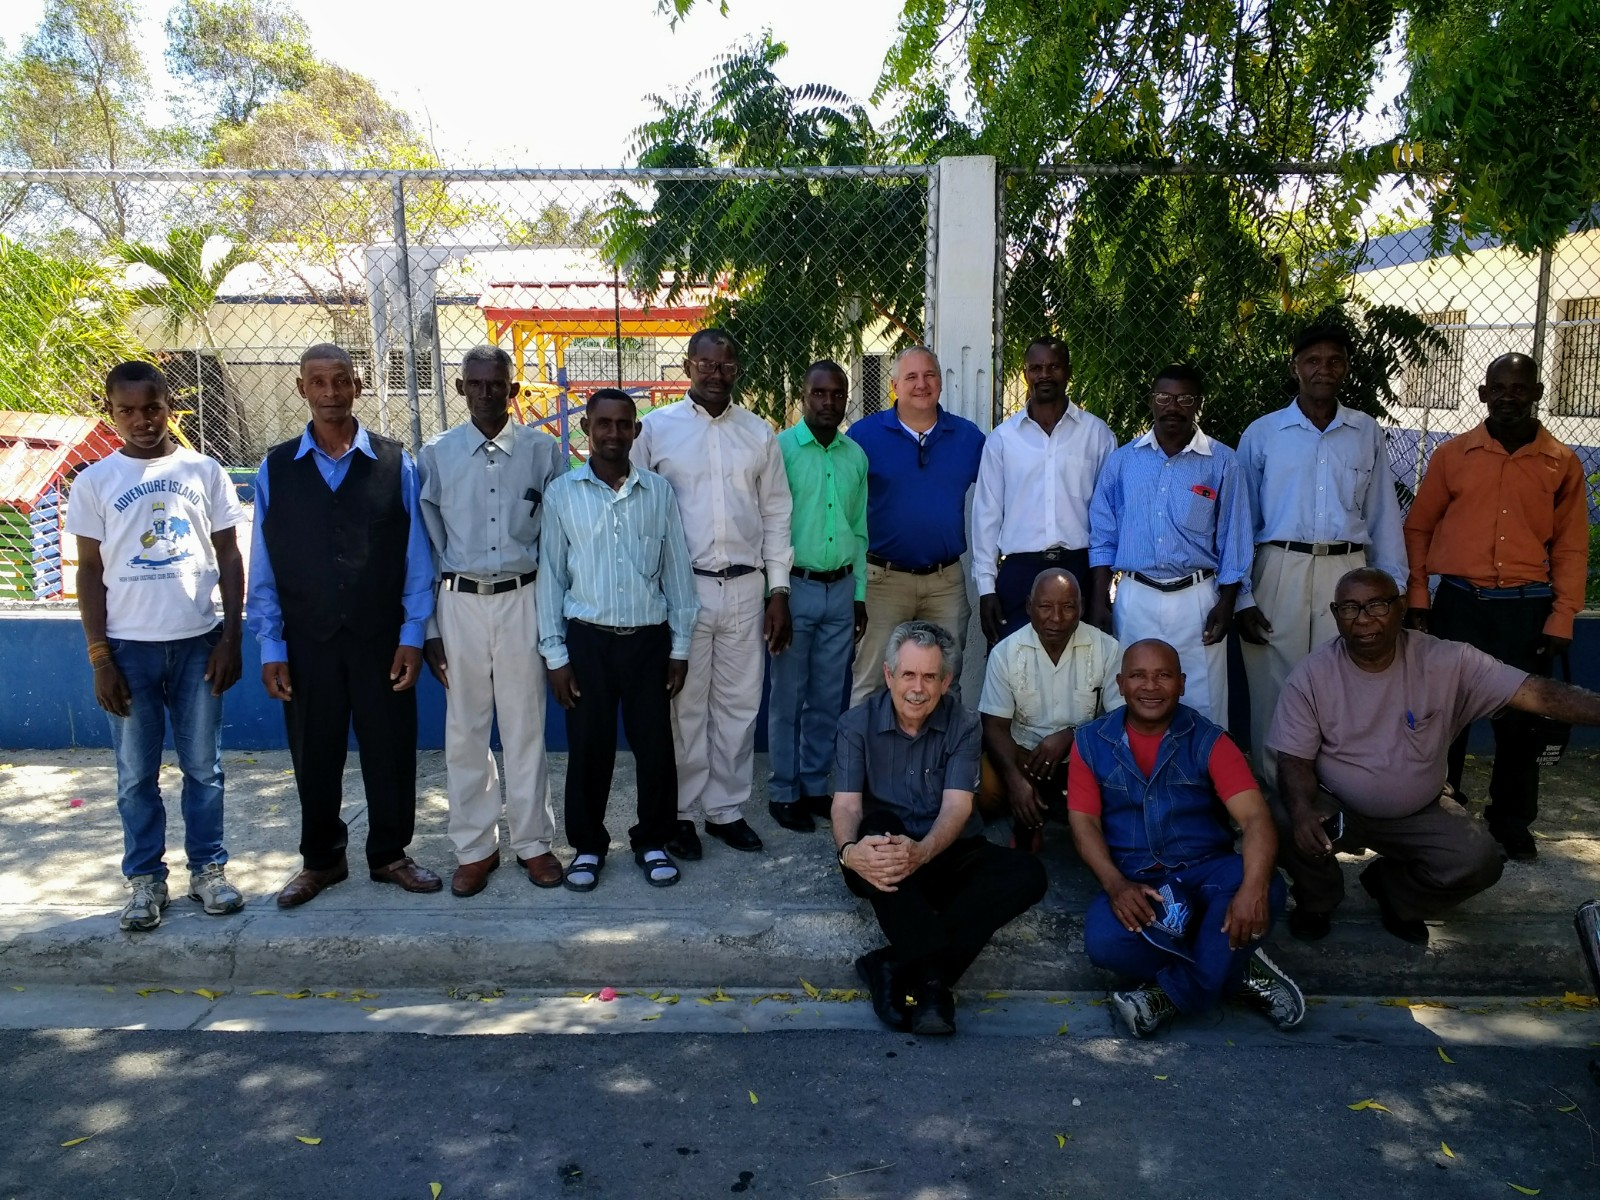 Haitian church leaders